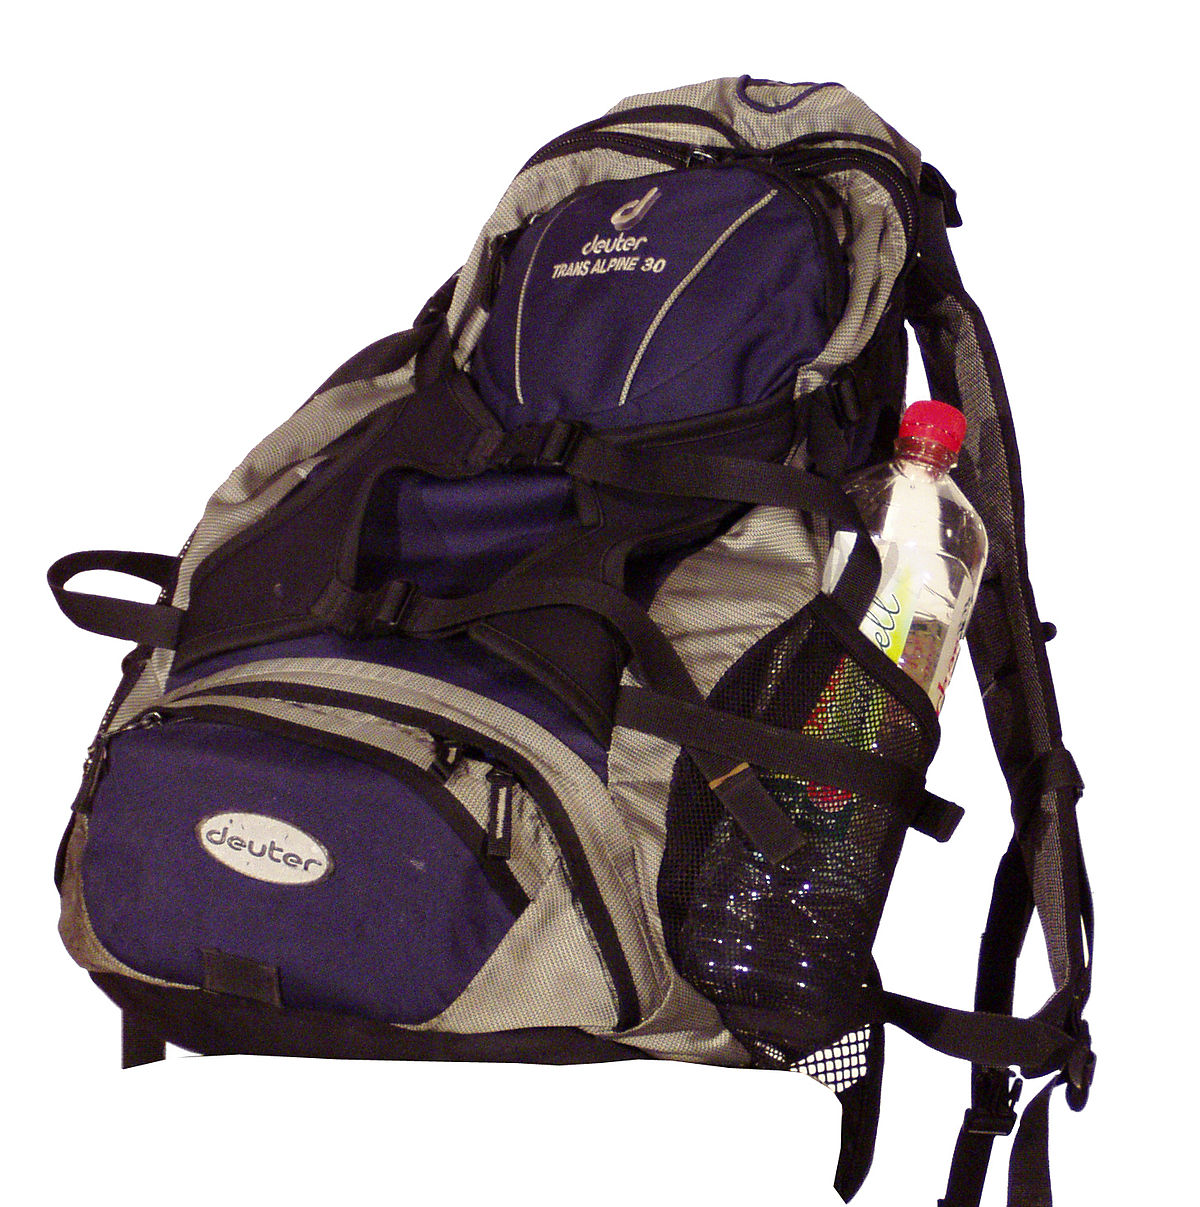 6e1416926a26 Backpack - Wikipedia